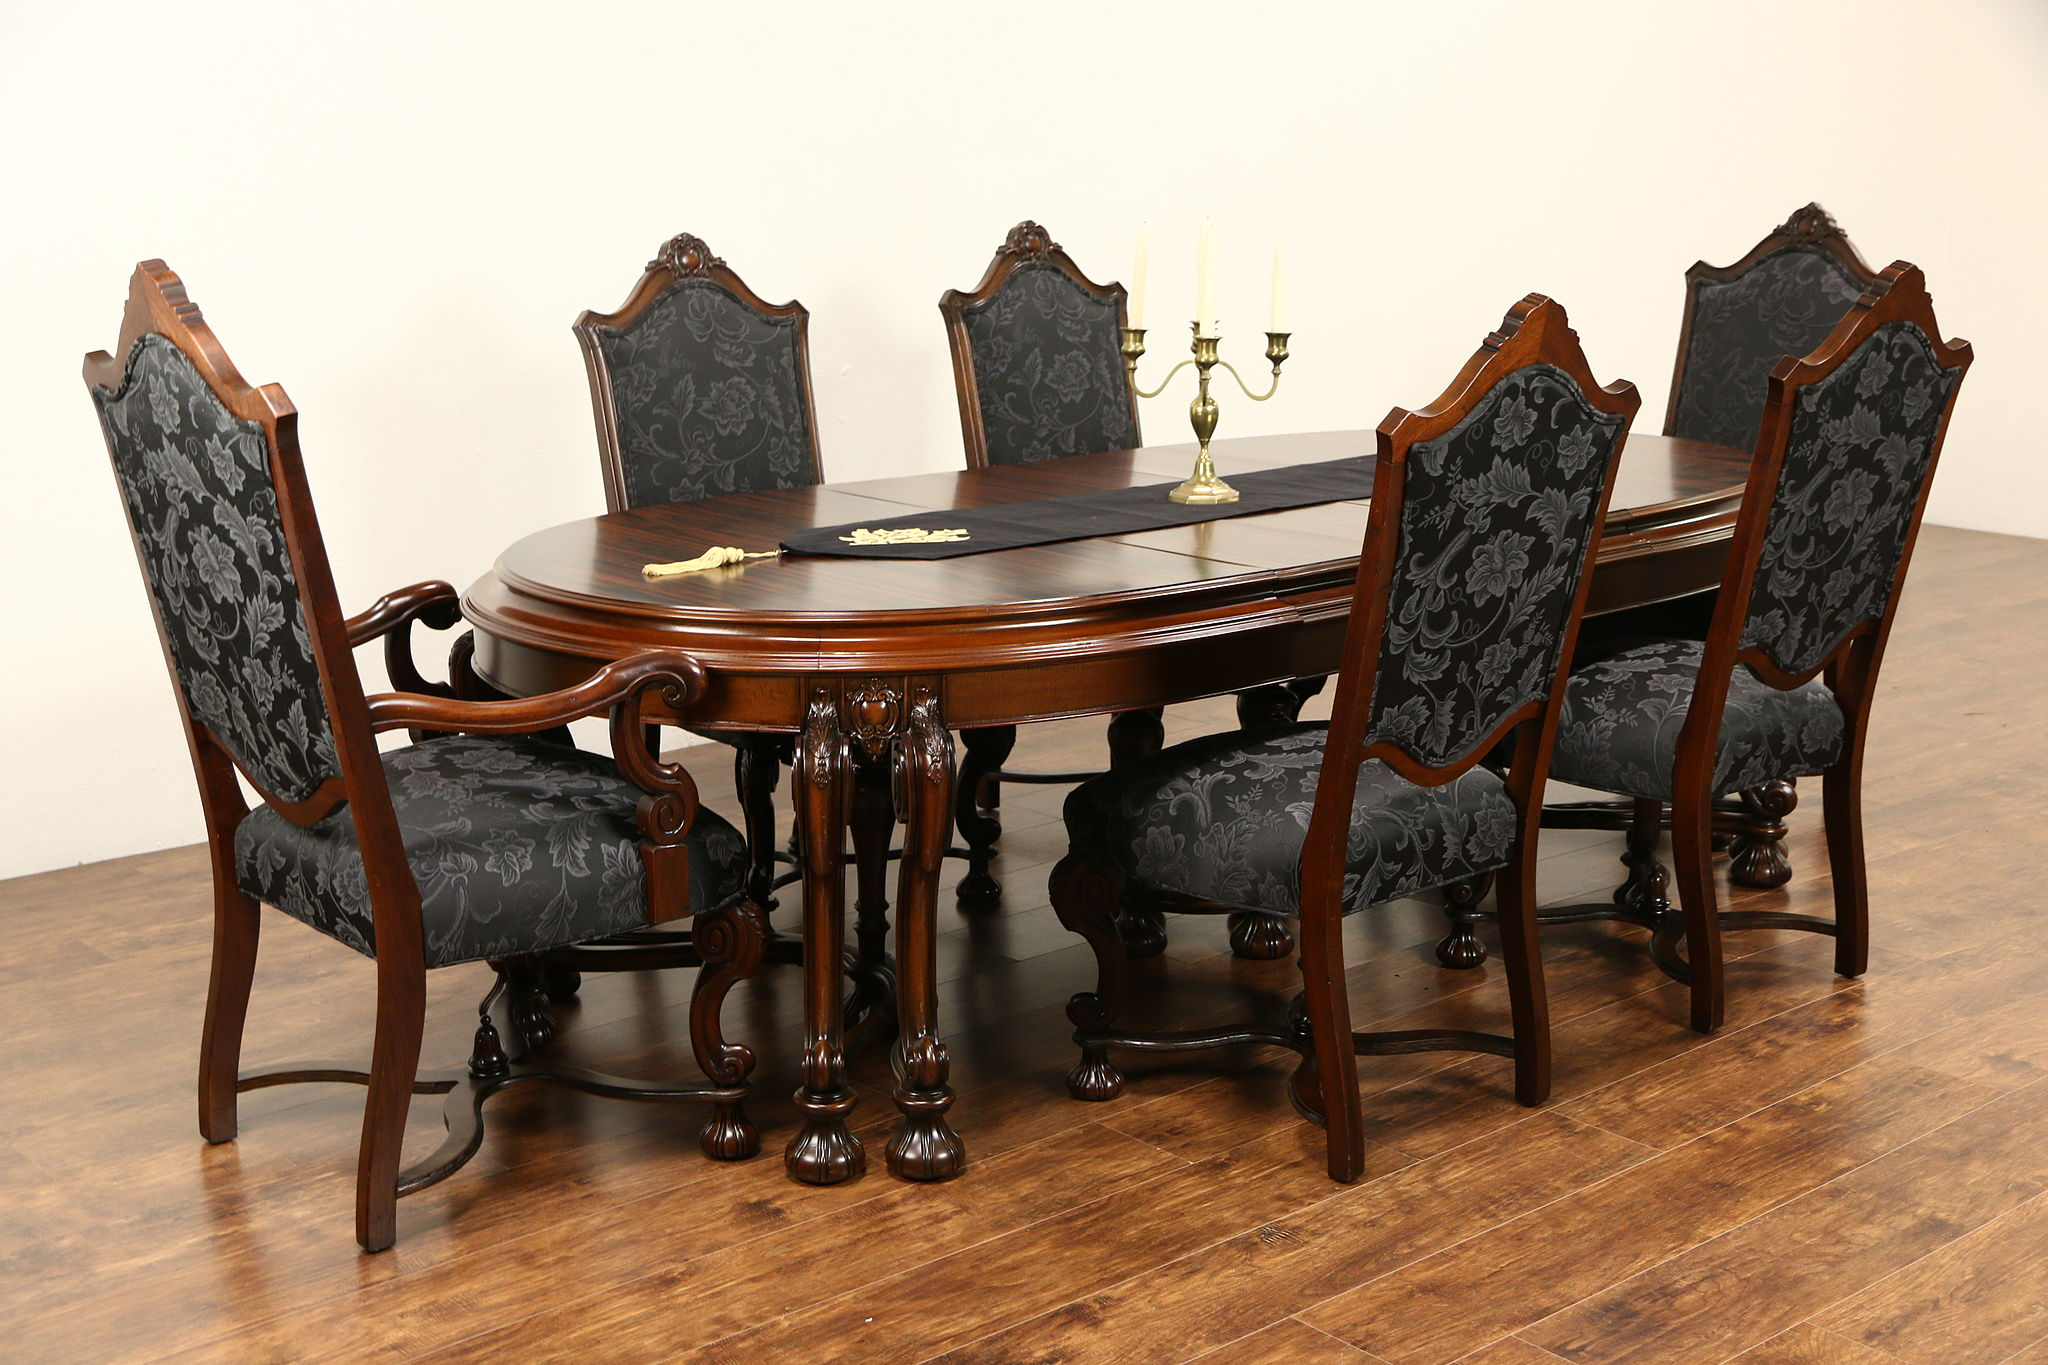 6 chair dining set leather office sale sold renaissance 1925 antique table 3 leaves chairs new upholstery harp gallery